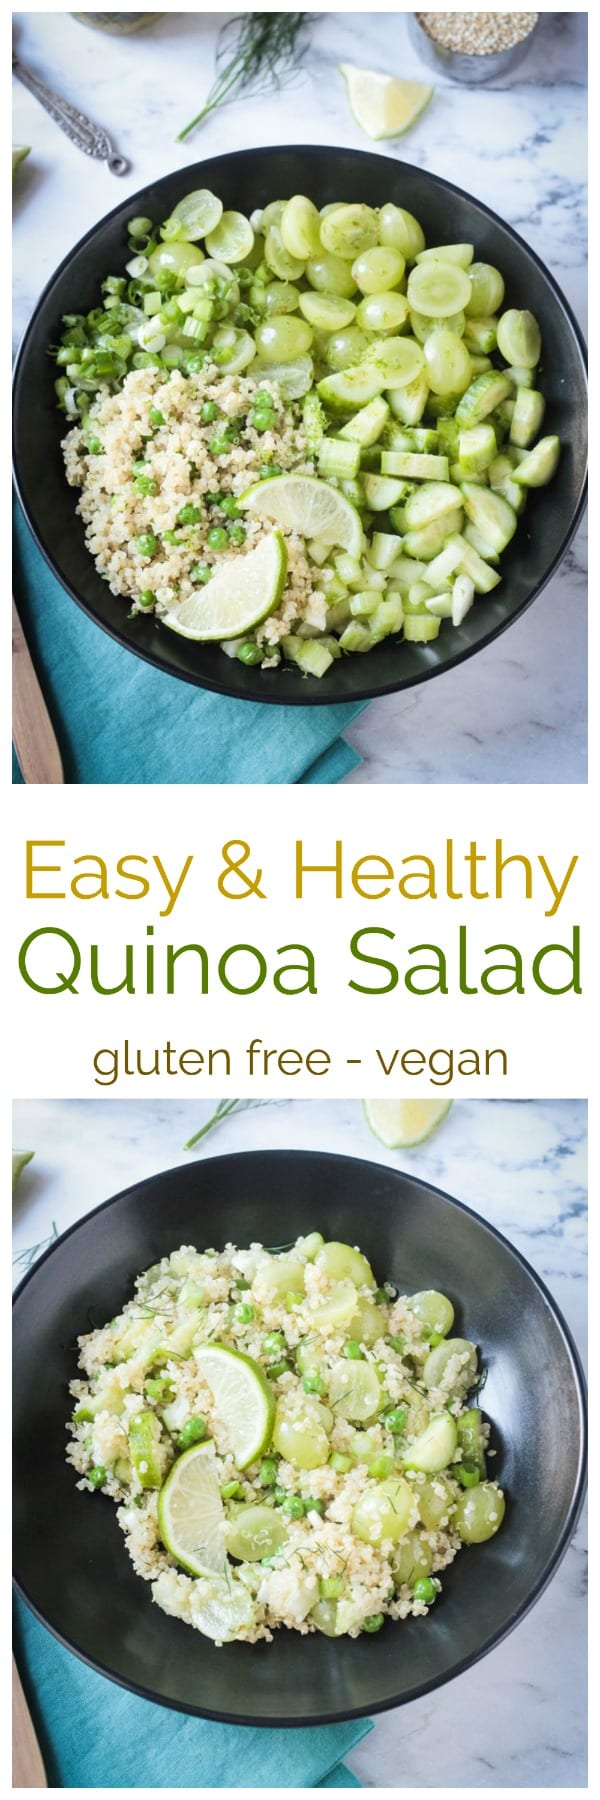 Healthy Vegan Quinoa Salad w/ Fresh Dill & Lime Vinaigrette - a light and refreshing, yet high protein salad that's perfect for spring or summer. Eat it warm, room temperature, or cold. Perfect for lunches on the go, like picnics, potlucks, or school lunch boxes. #vegan #healthy #quinoa #glutenfree #lunch #dinner #easy #meatless #vegetarian #salad